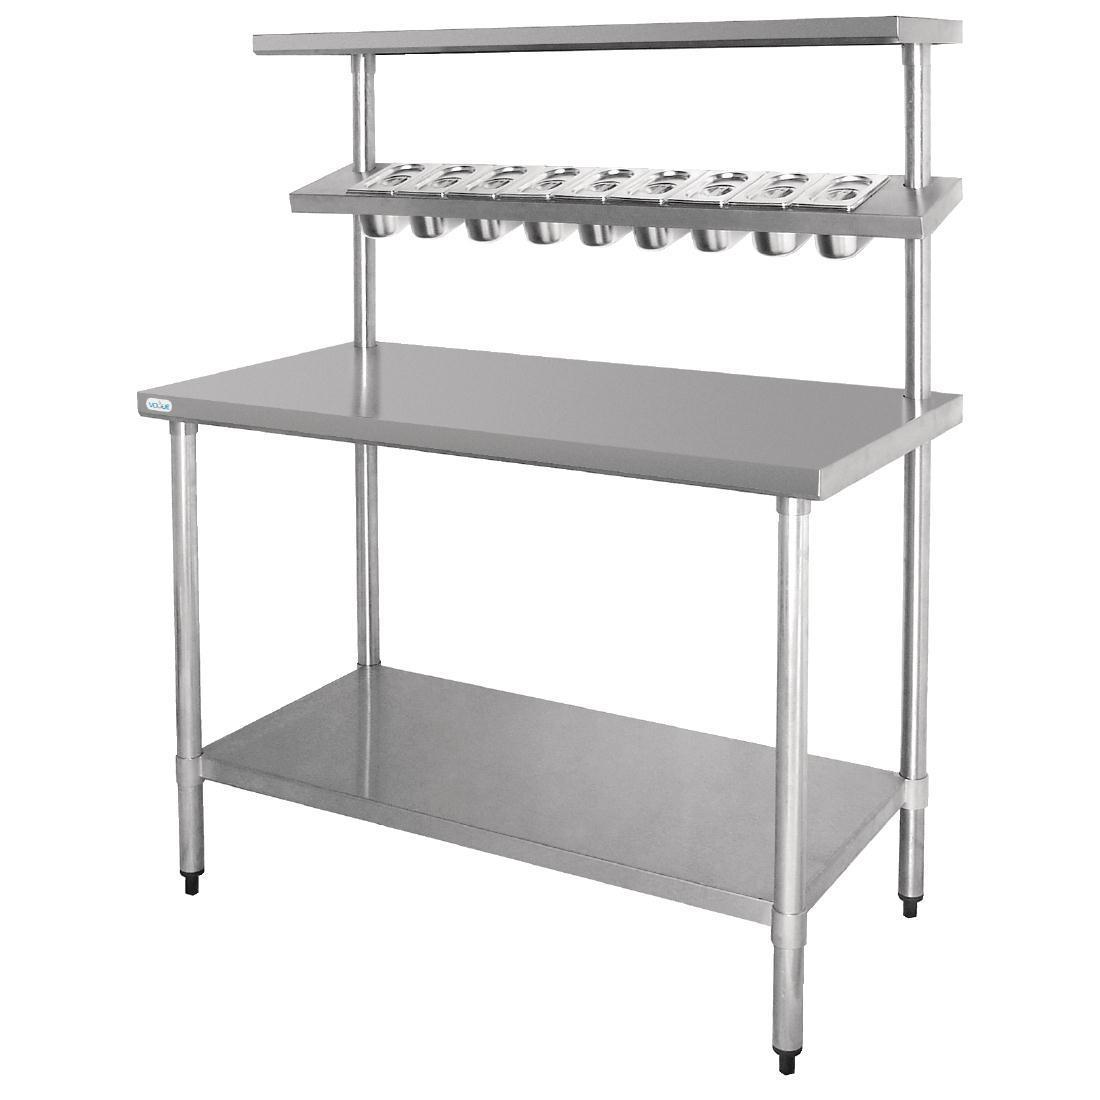 Vogue Stainless Steel Prep Station with Gantry - Each - CB908